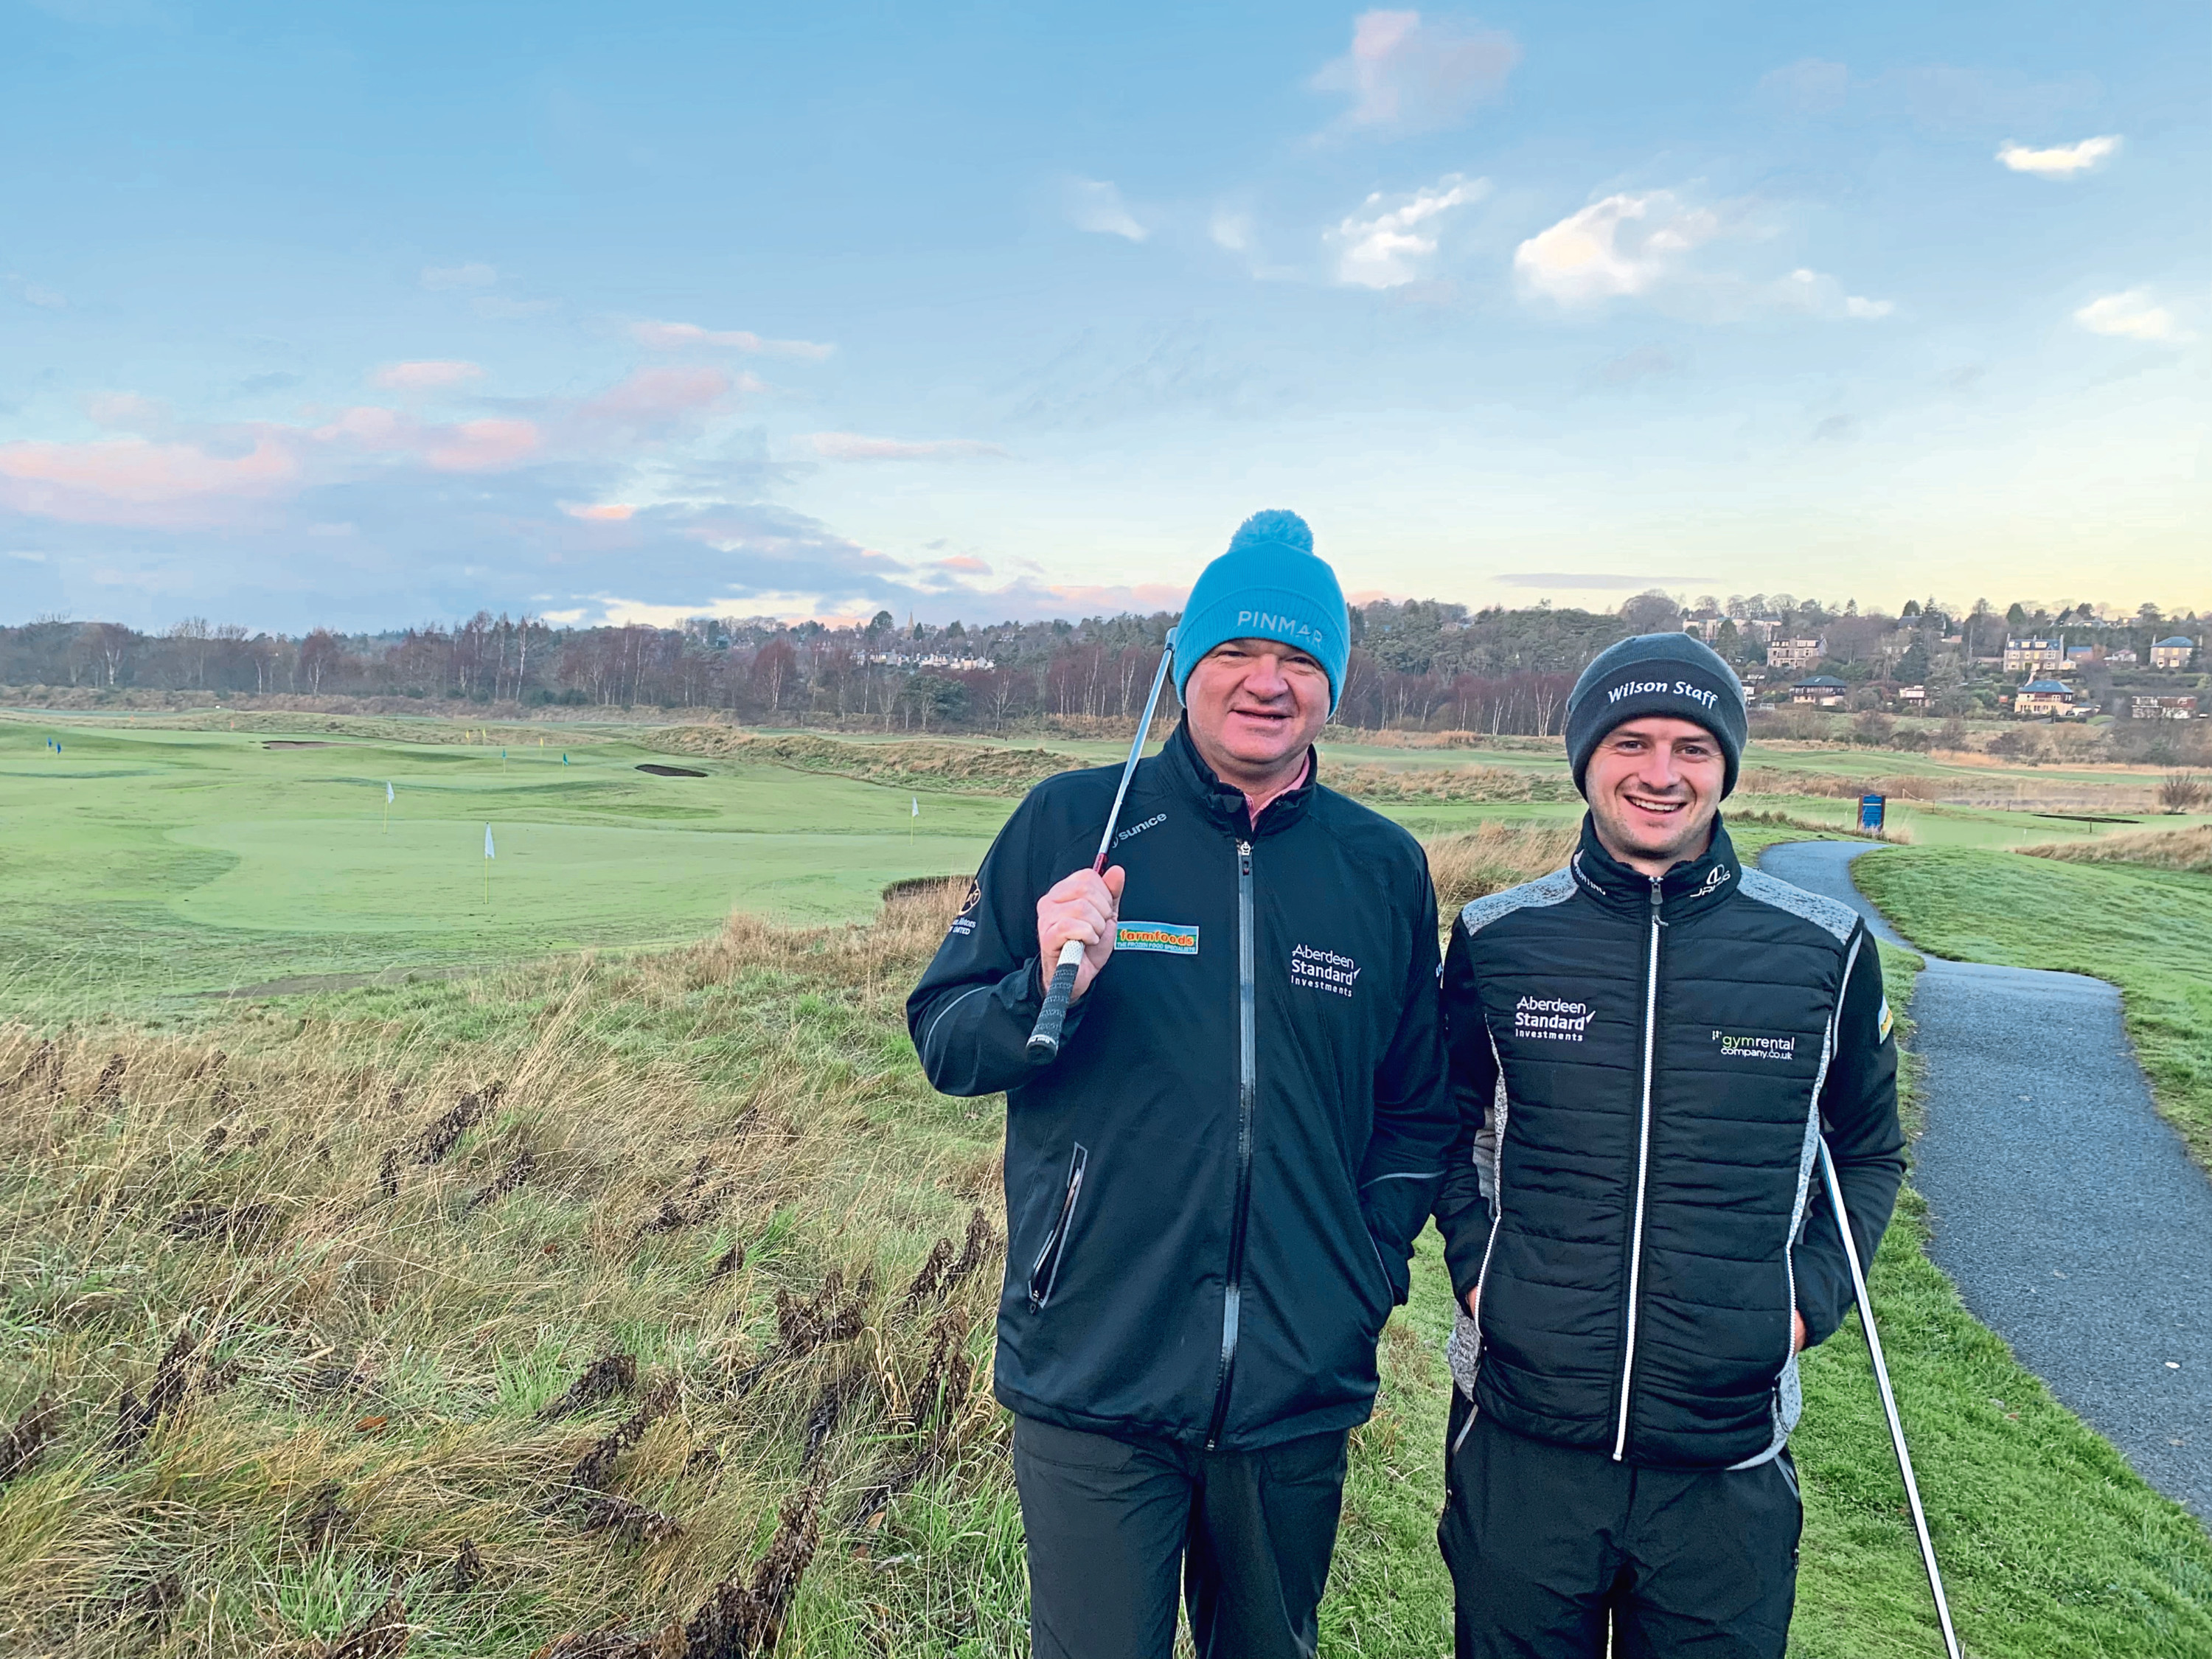 Paul Lawrie with Aberdeen protege David Law, now playing on the European Tour.